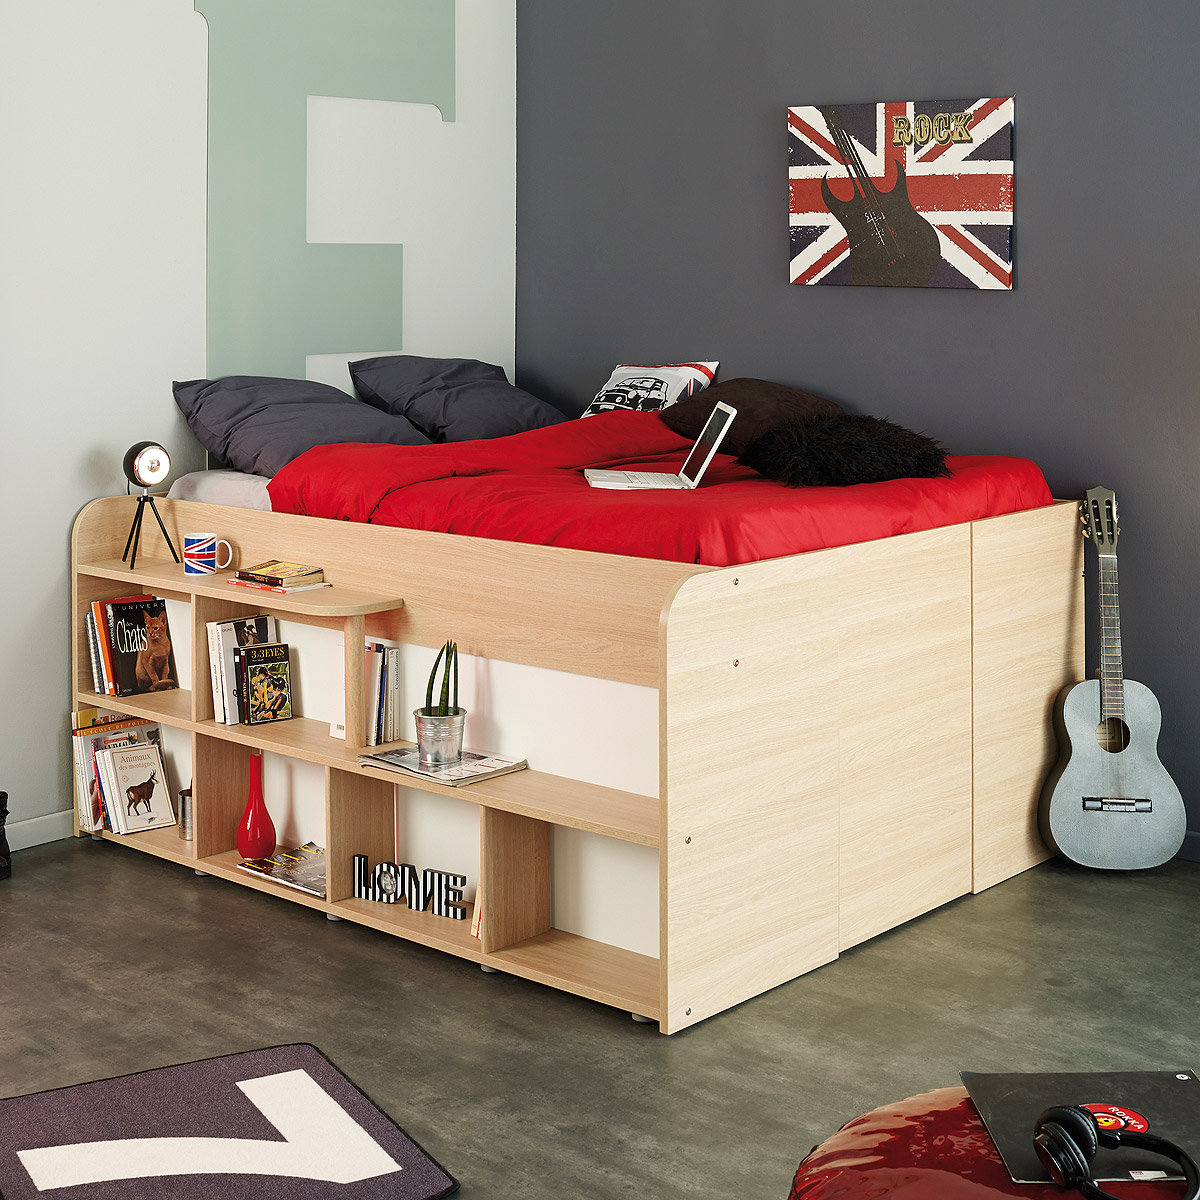 hochbett space up bett in baltimore eiche mit stauraum und. Black Bedroom Furniture Sets. Home Design Ideas